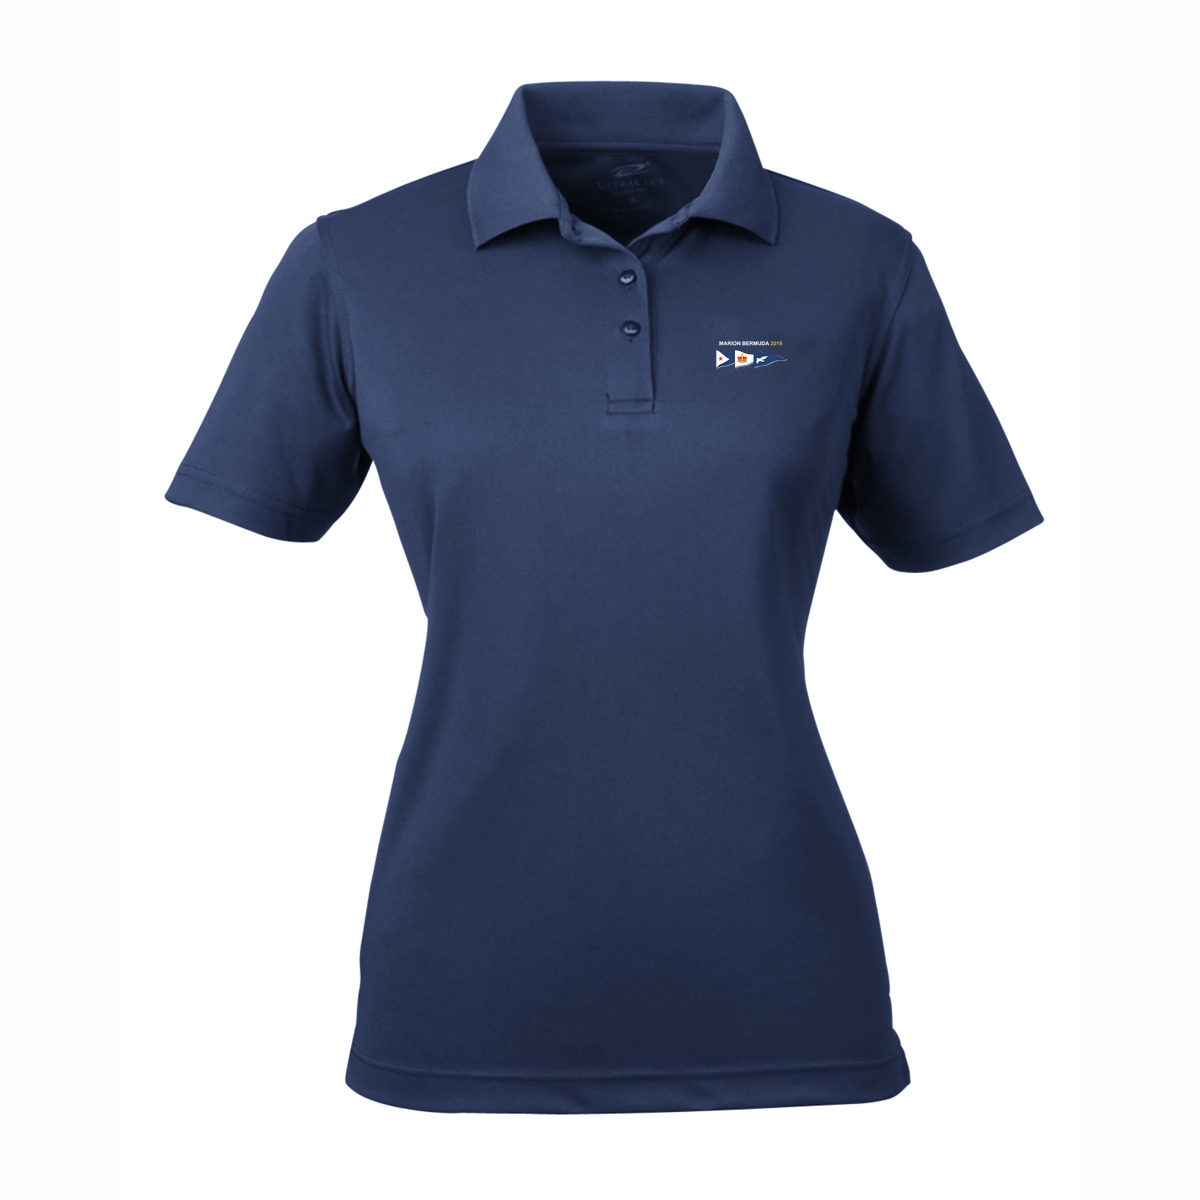 MBR  19 Women's TECH POLO